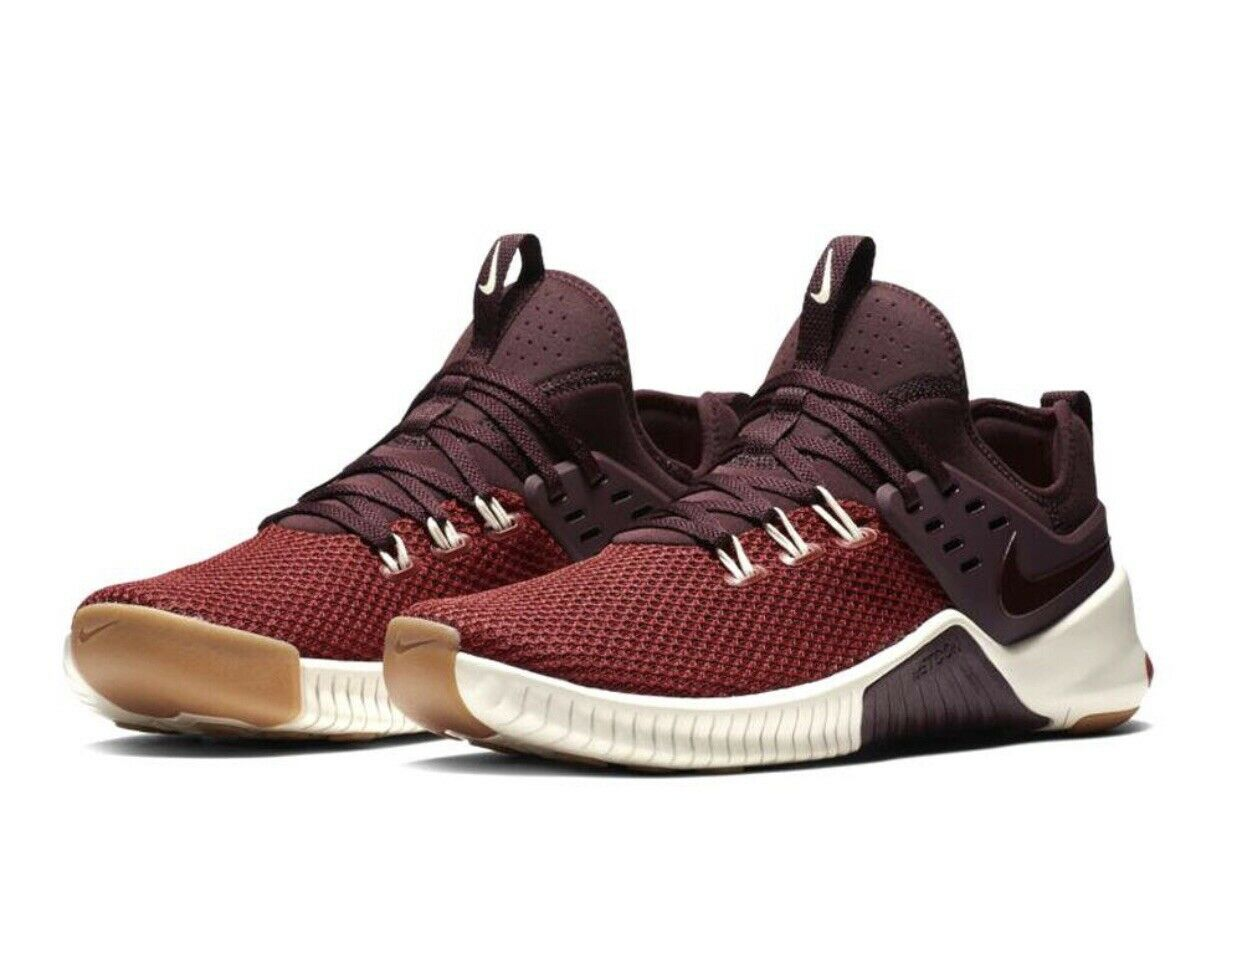 on sale 3df17 3c51a ... RUNNING WALKING SHOES,. Nike FREE X METCON 4 4 4 Crossfit Gym Dune Red  f33c14